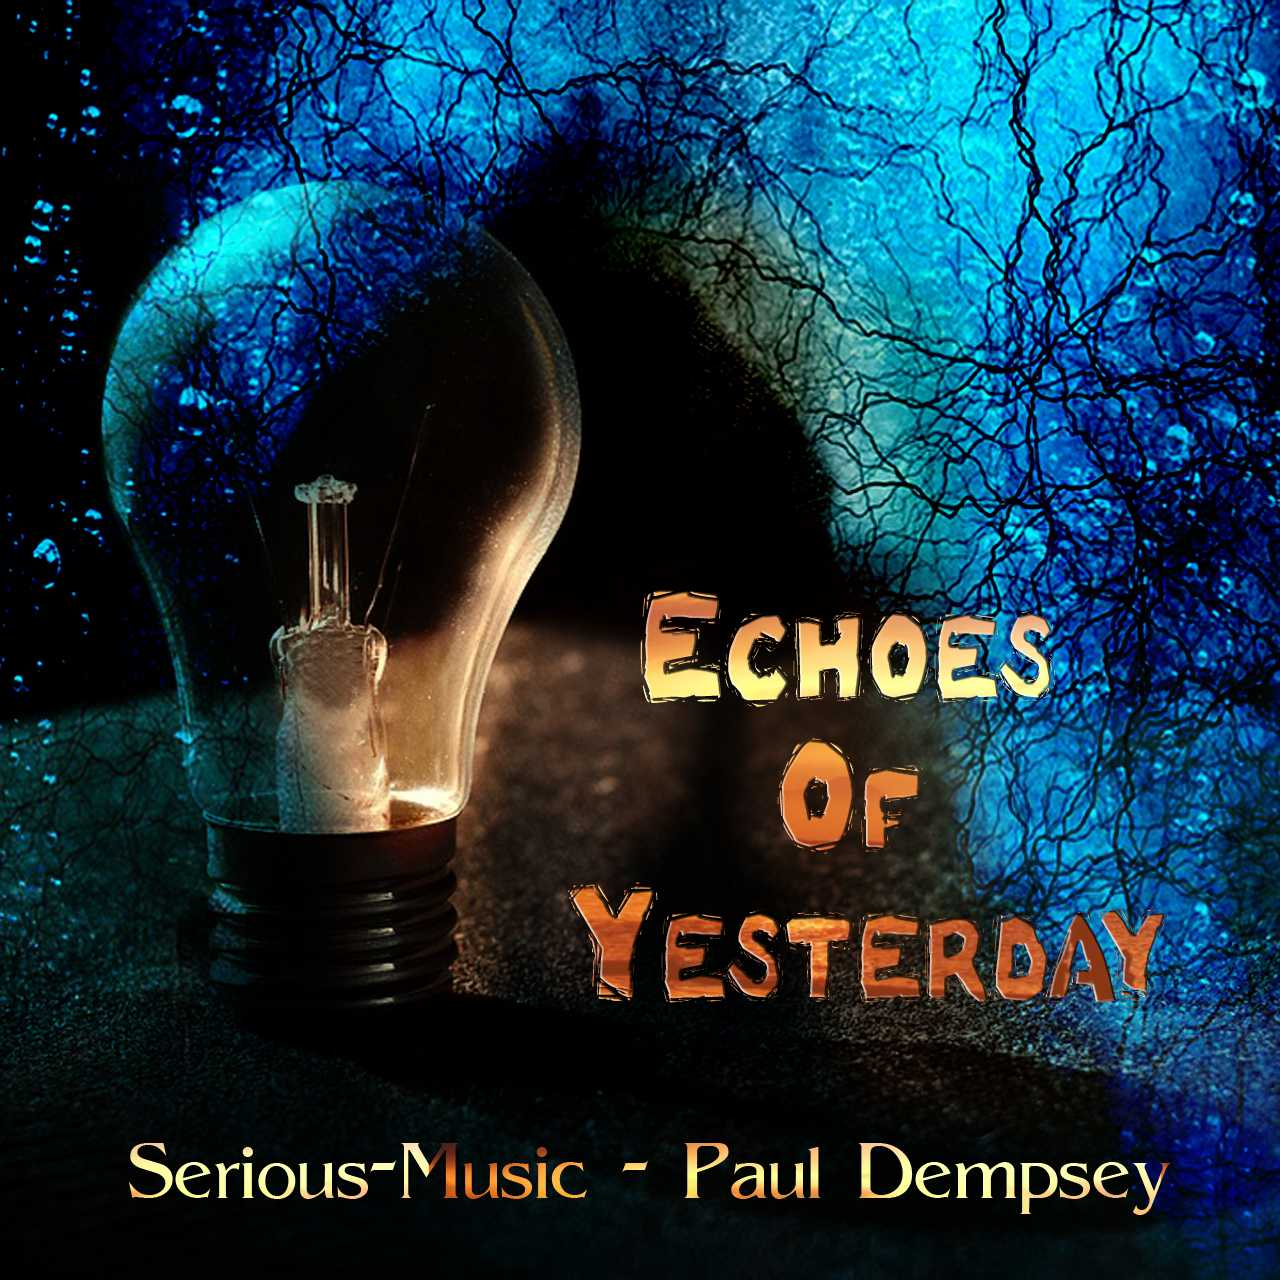 Echoes Of Yesterday feat. Paul Dempsey - Album ECHOES OF YESTERDAY